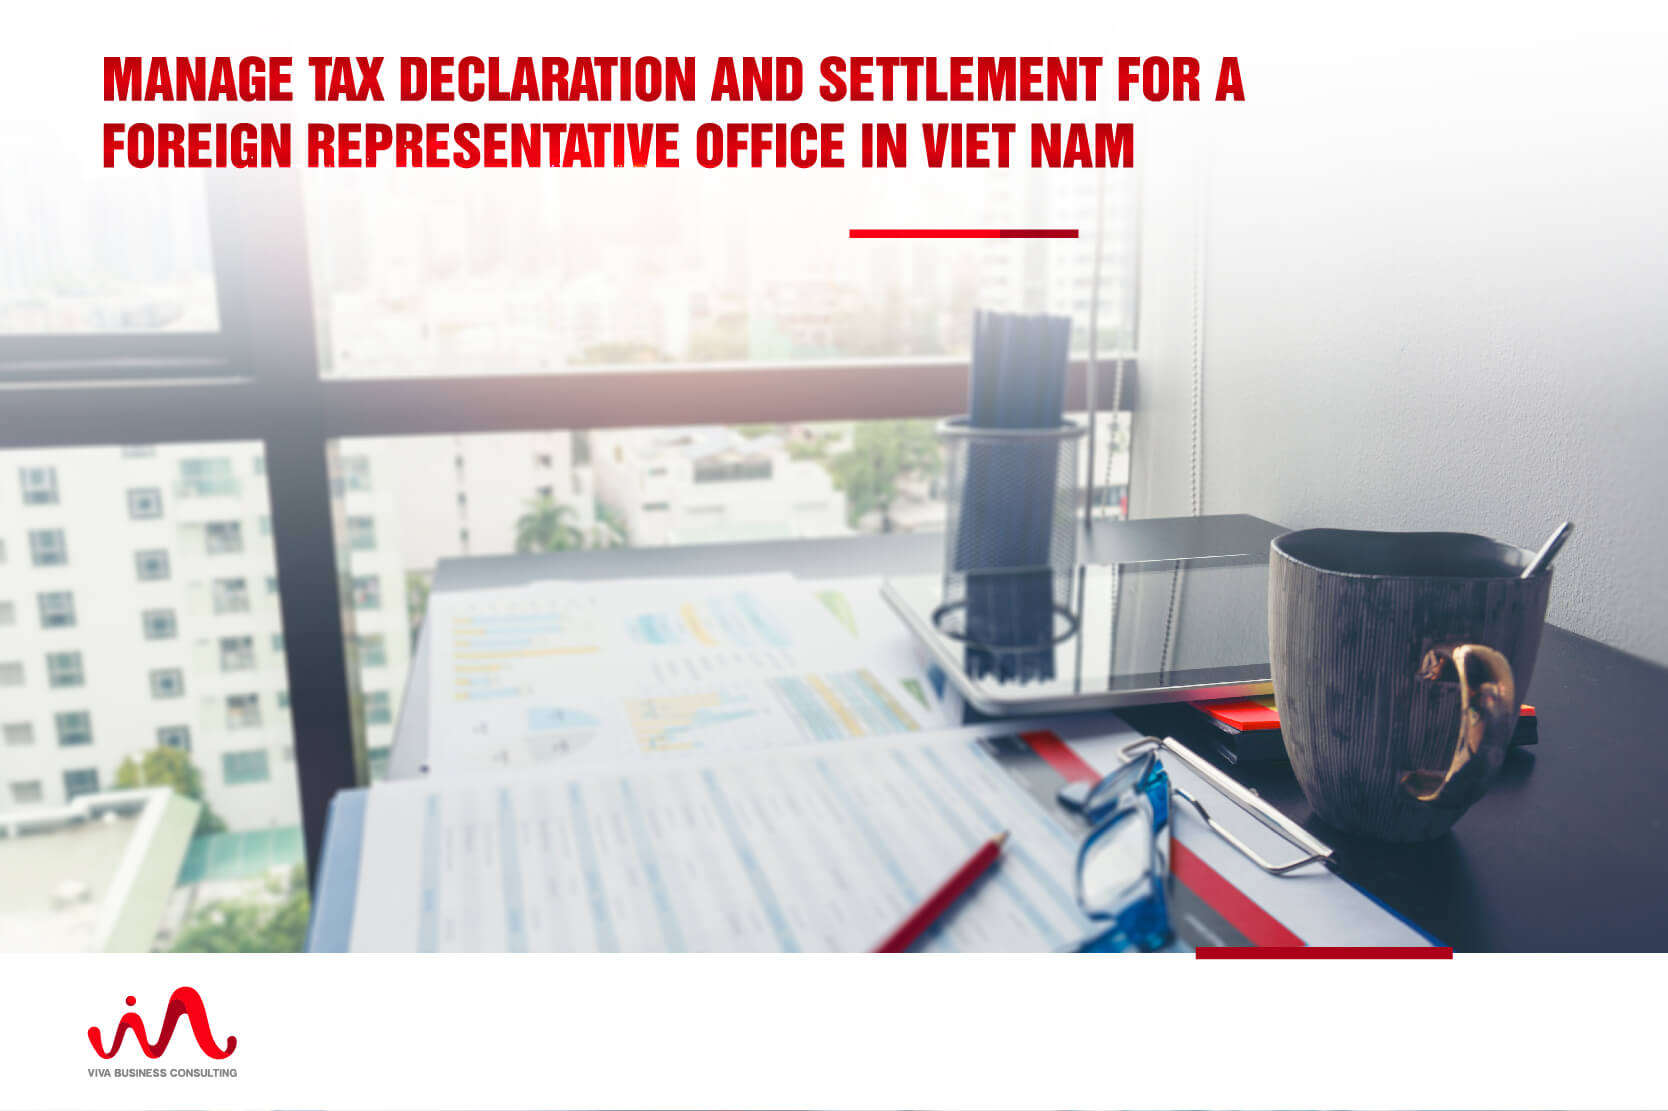 Representative Office Tax Declaration